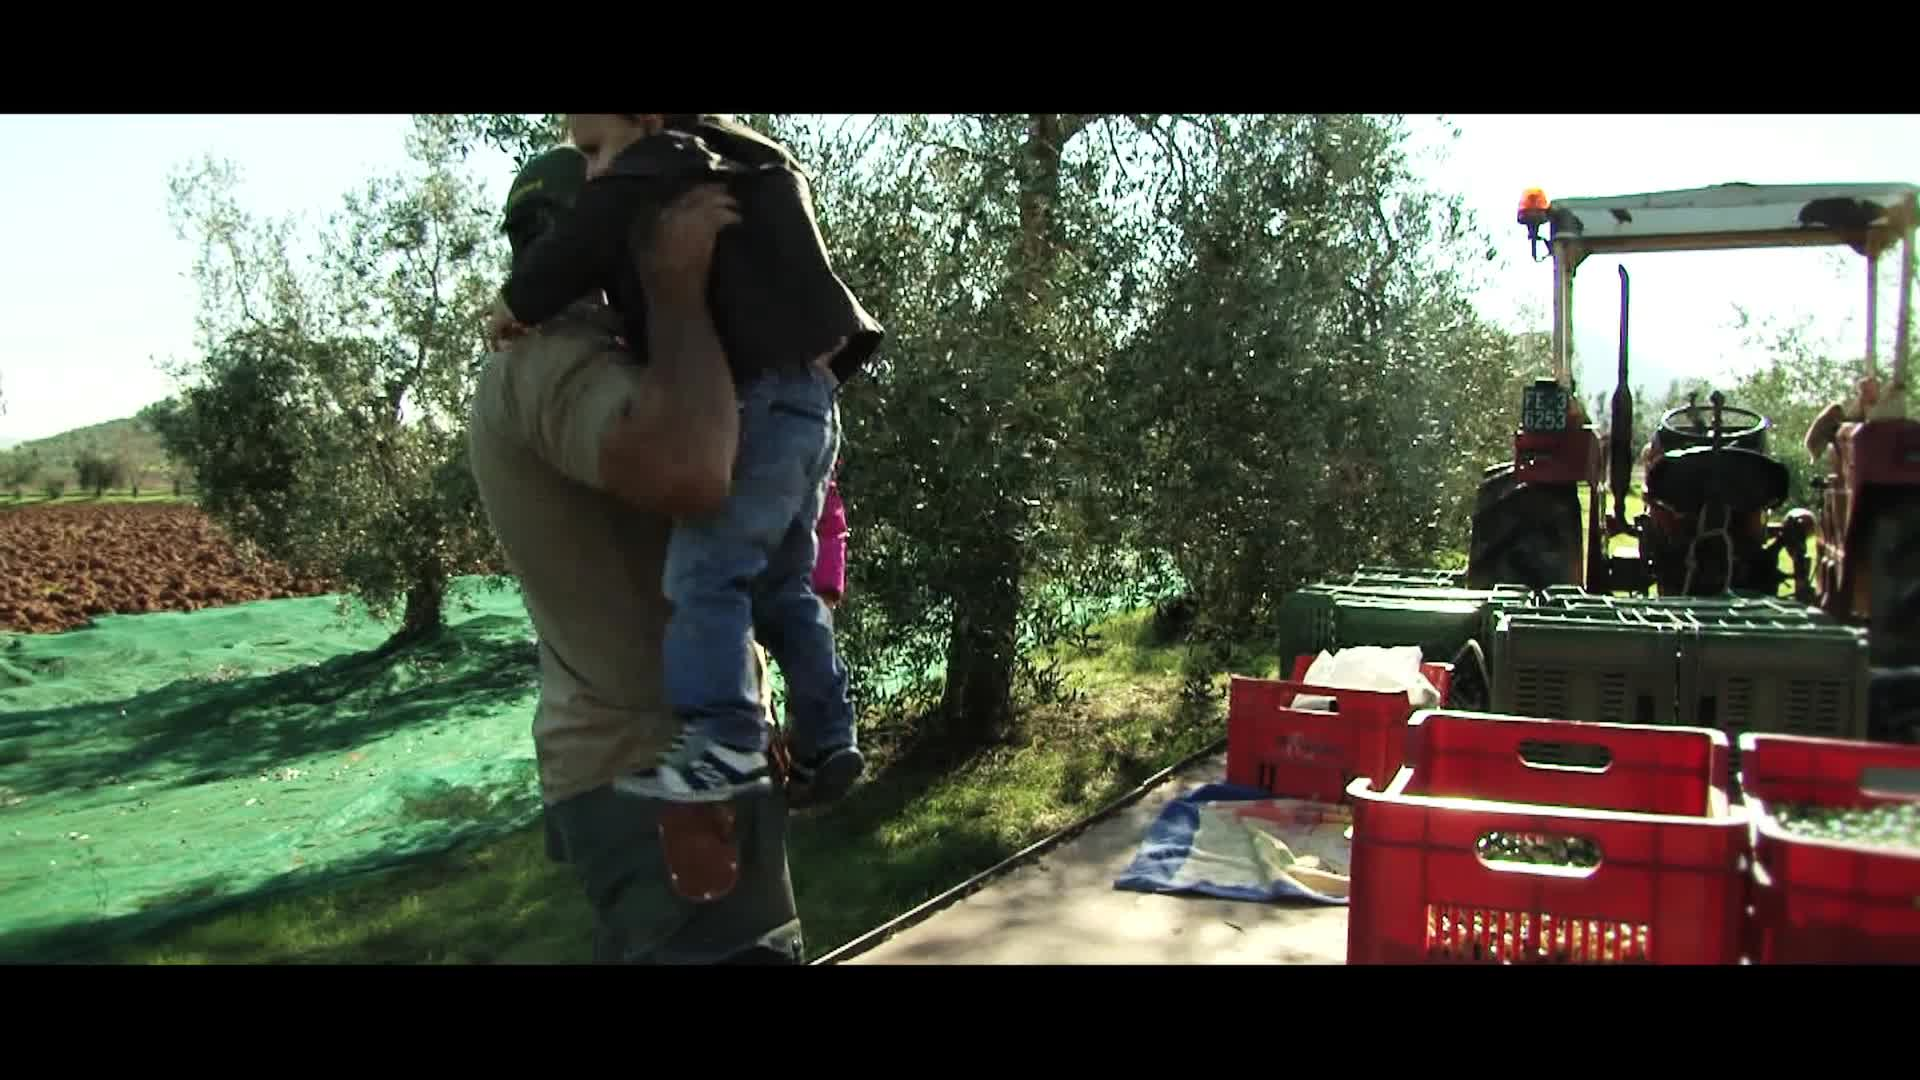 Cristina and Margherita Barco's family has been working the land since the 30's and they have always had an olive grove to get their oil from. They have since expanded their land and now produce olives for Bellucci's Extra Virgin Olive Oil for the entire world to enjoy.